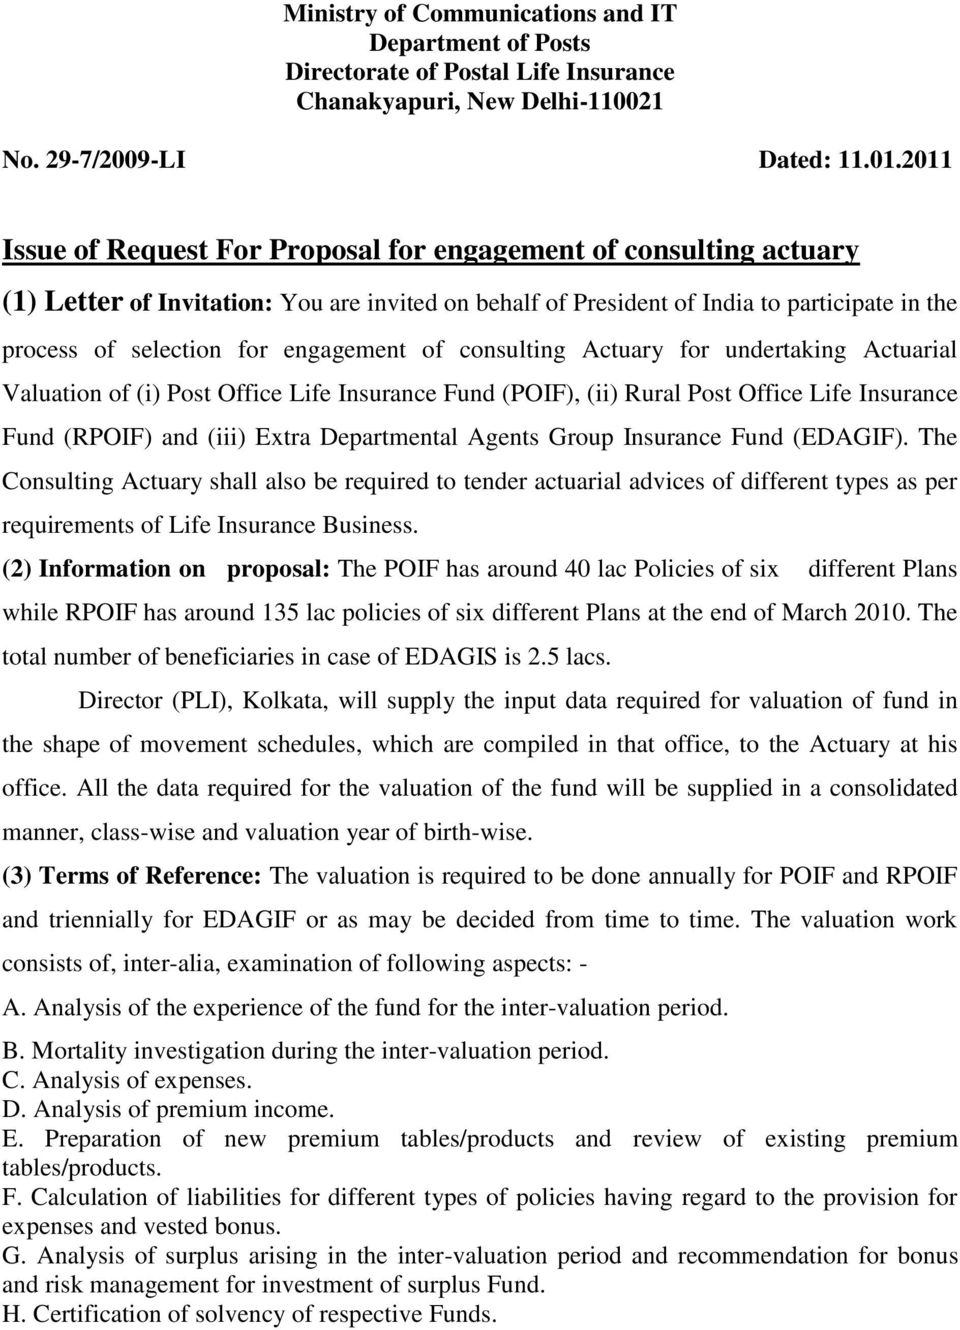 engagement of consulting Actuary for undertaking Actuarial Valuation of (i) Post Office Life Insurance Fund (POIF), (ii) Rural Post Office Life Insurance Fund (RPOIF) and (iii) Extra Departmental